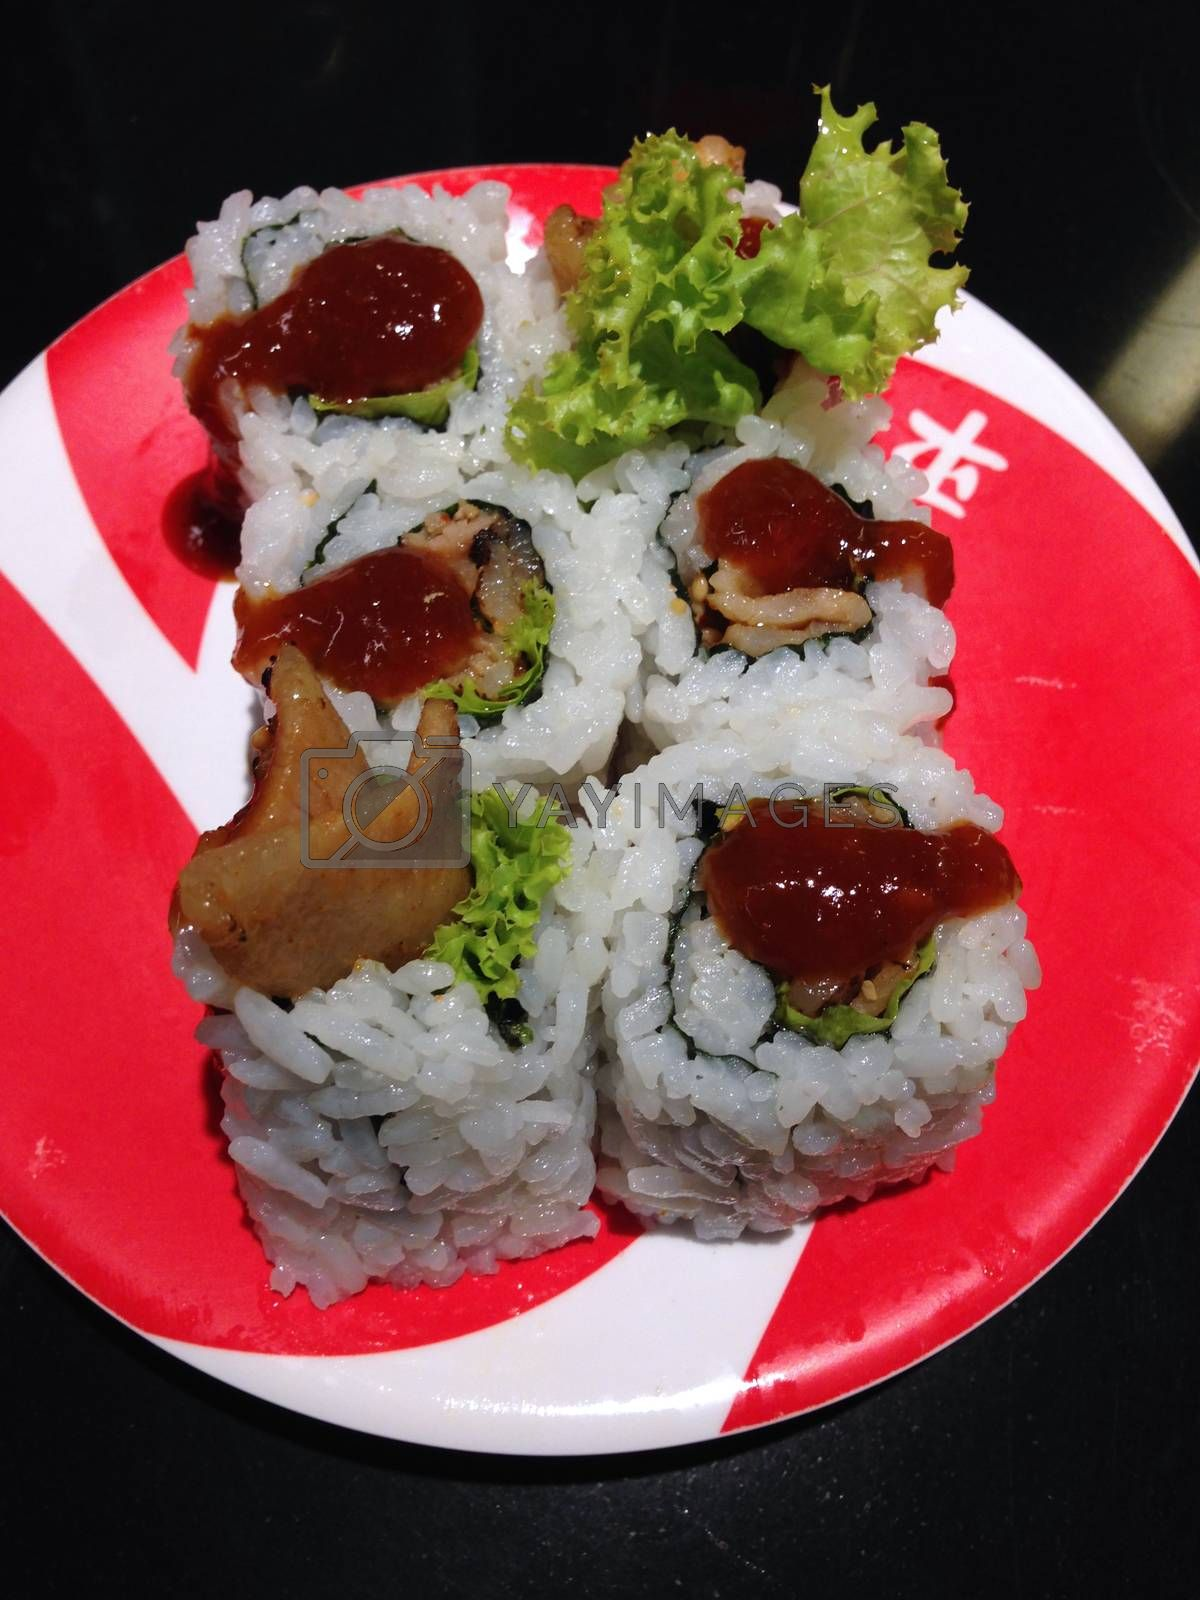 Royalty free image of the dish of sushi with grilled pork by pandara